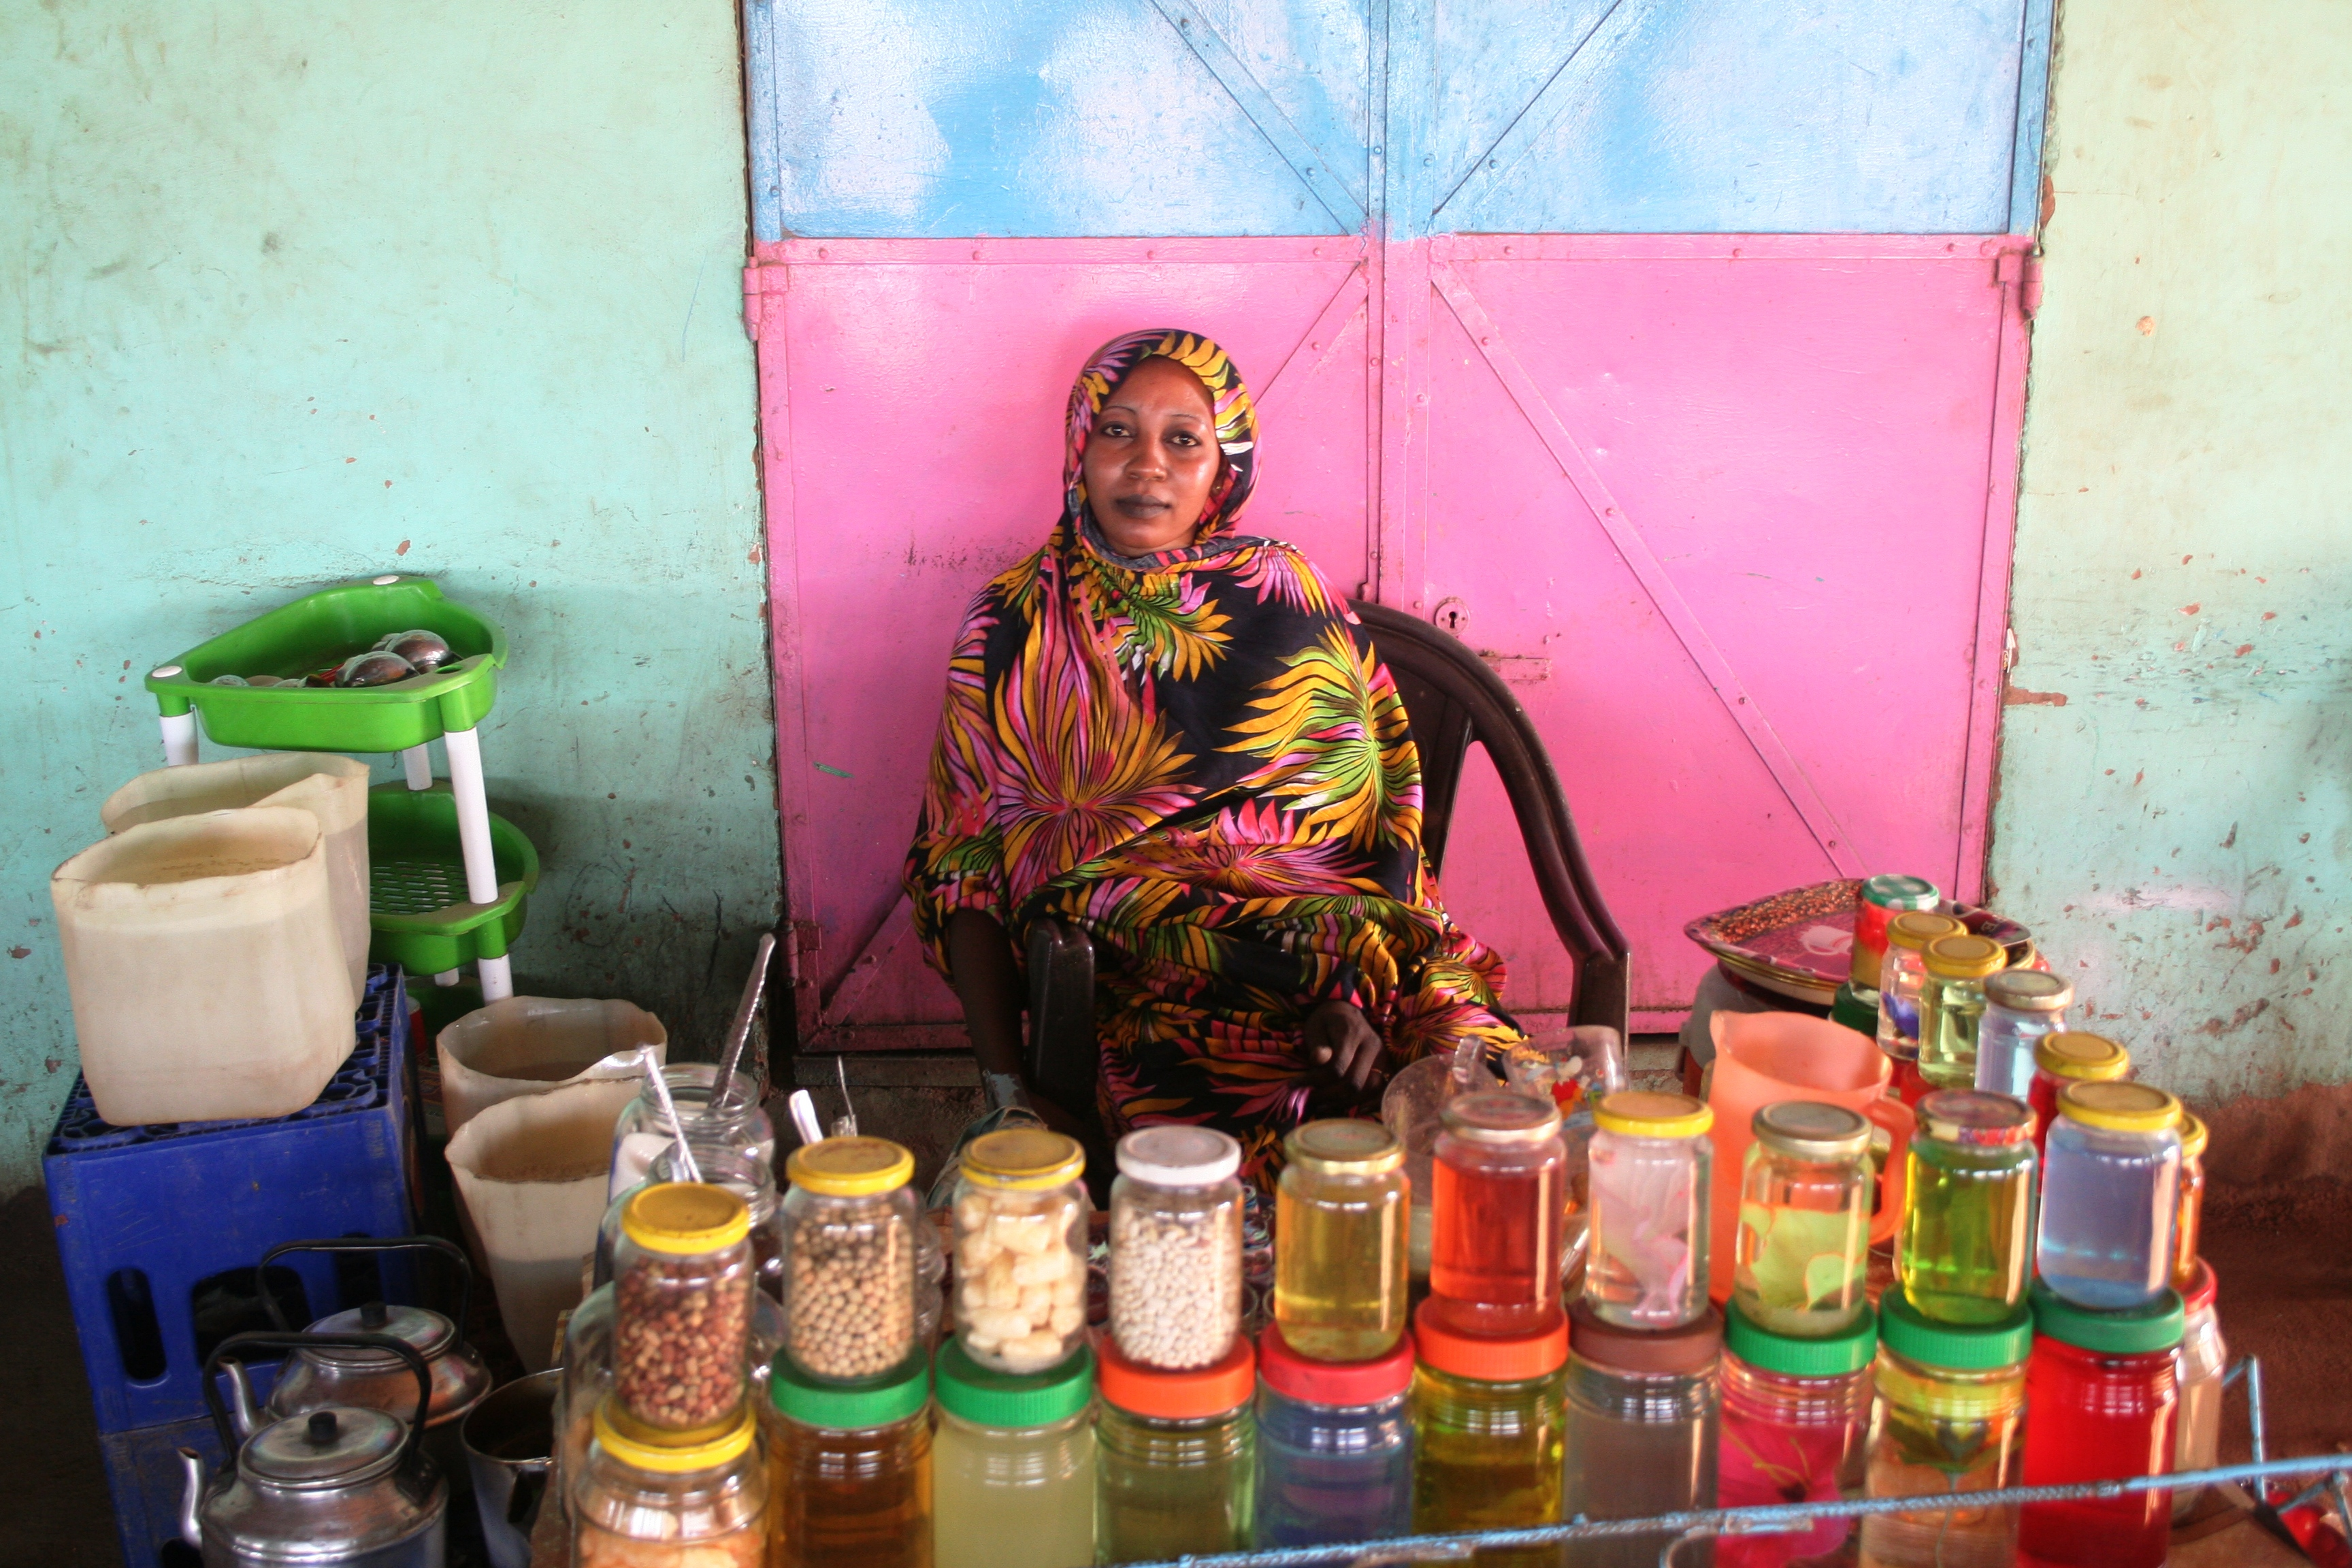 Woman shopkeeper in Sudan.